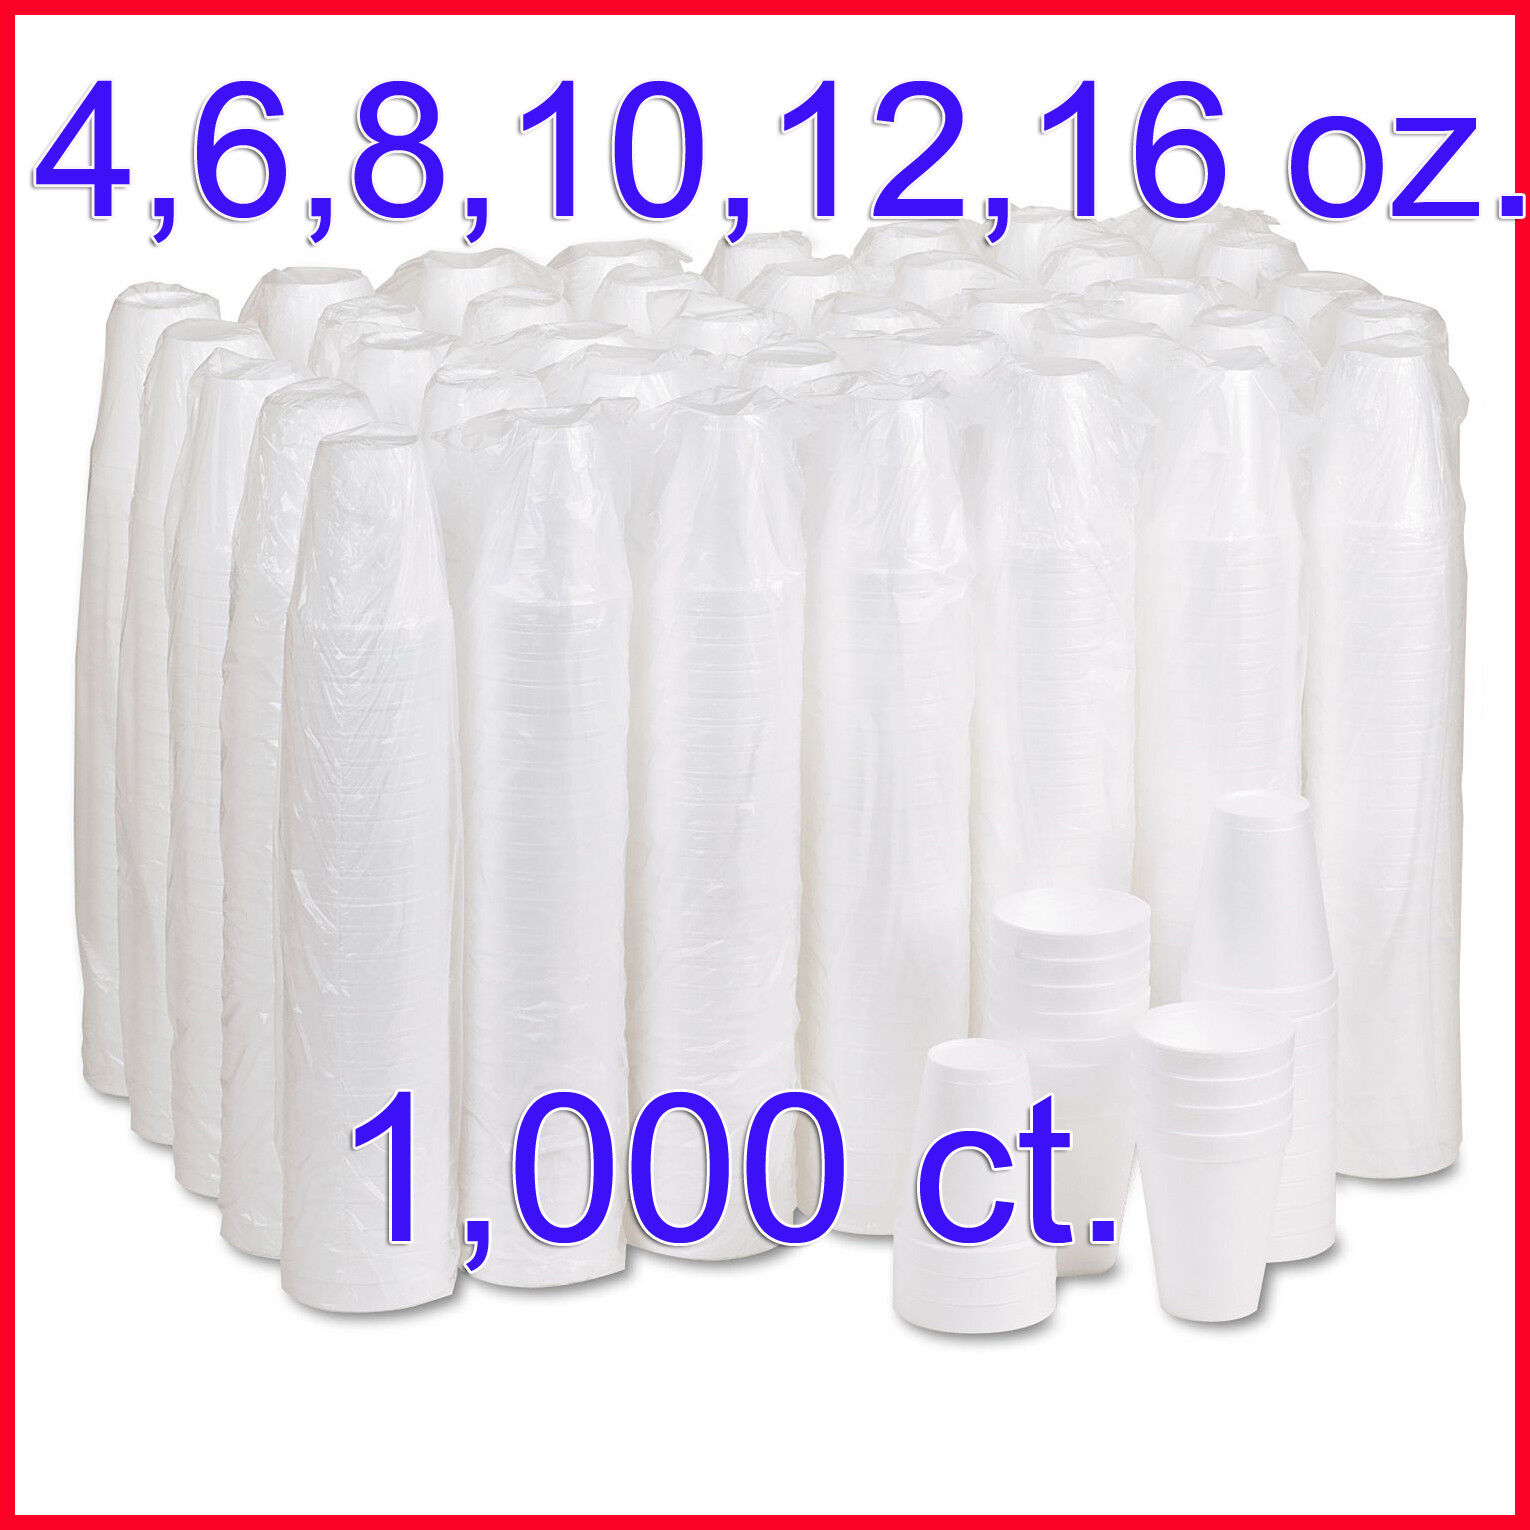 Dart Hot and Cold Foam Cups, 1,000 ct. oz